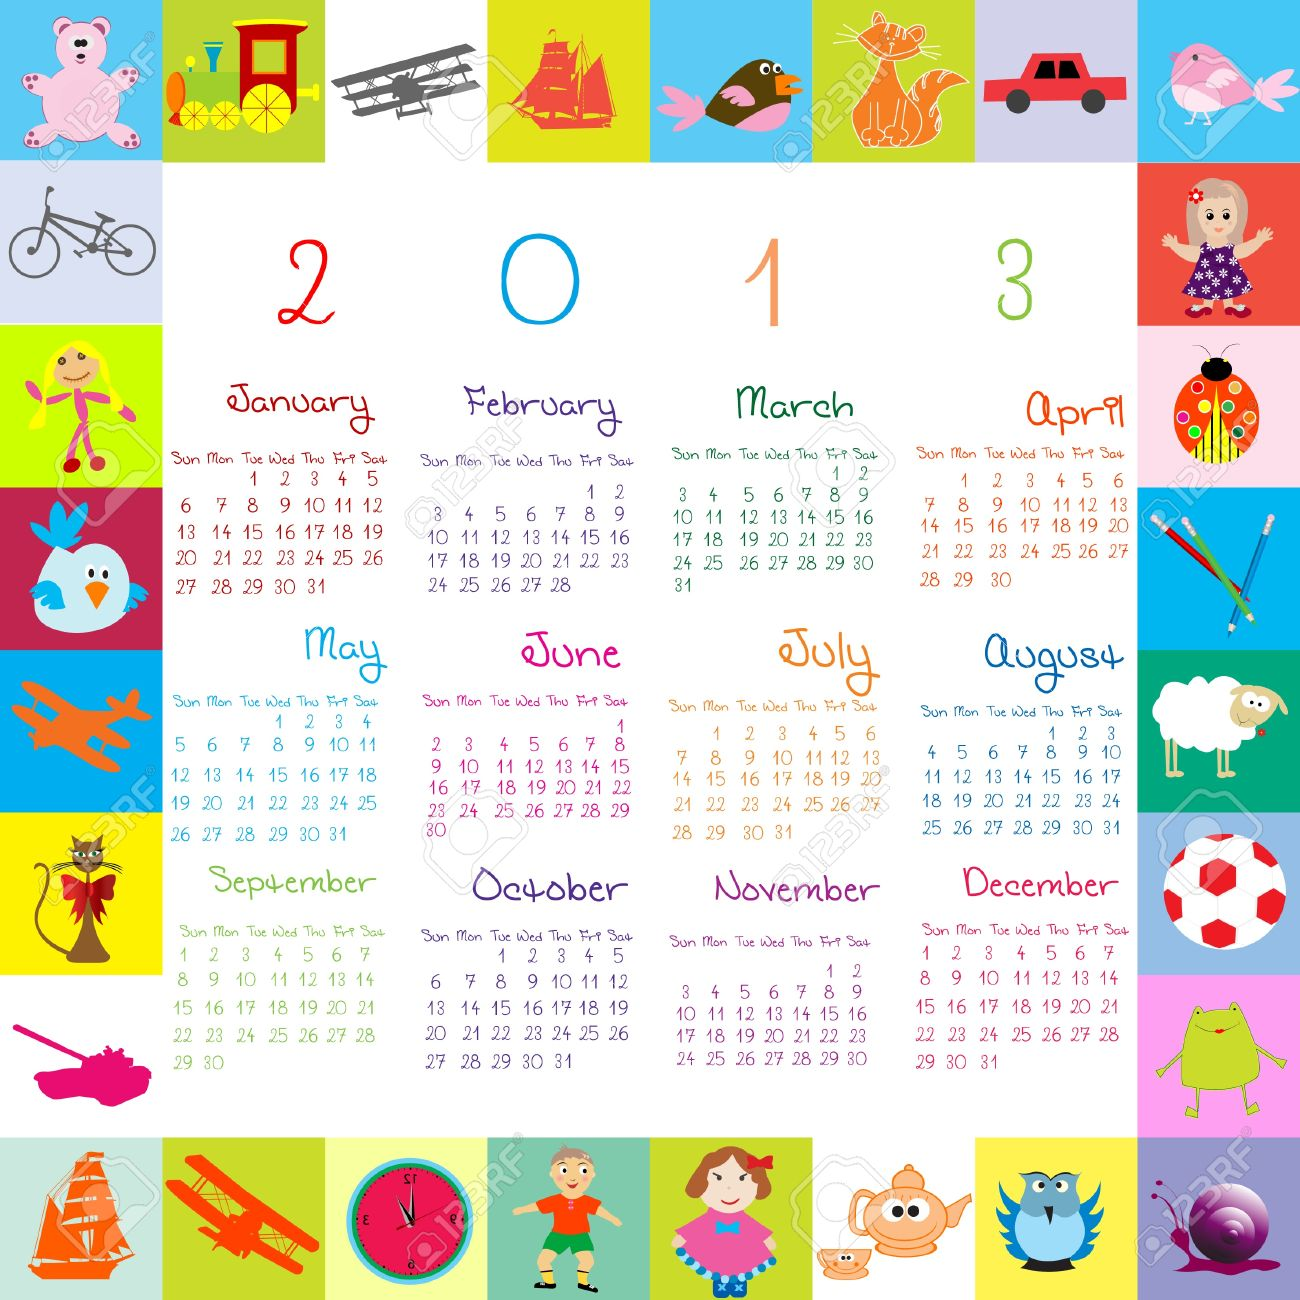 2013 calendar for kids Stock Vector - 12407474